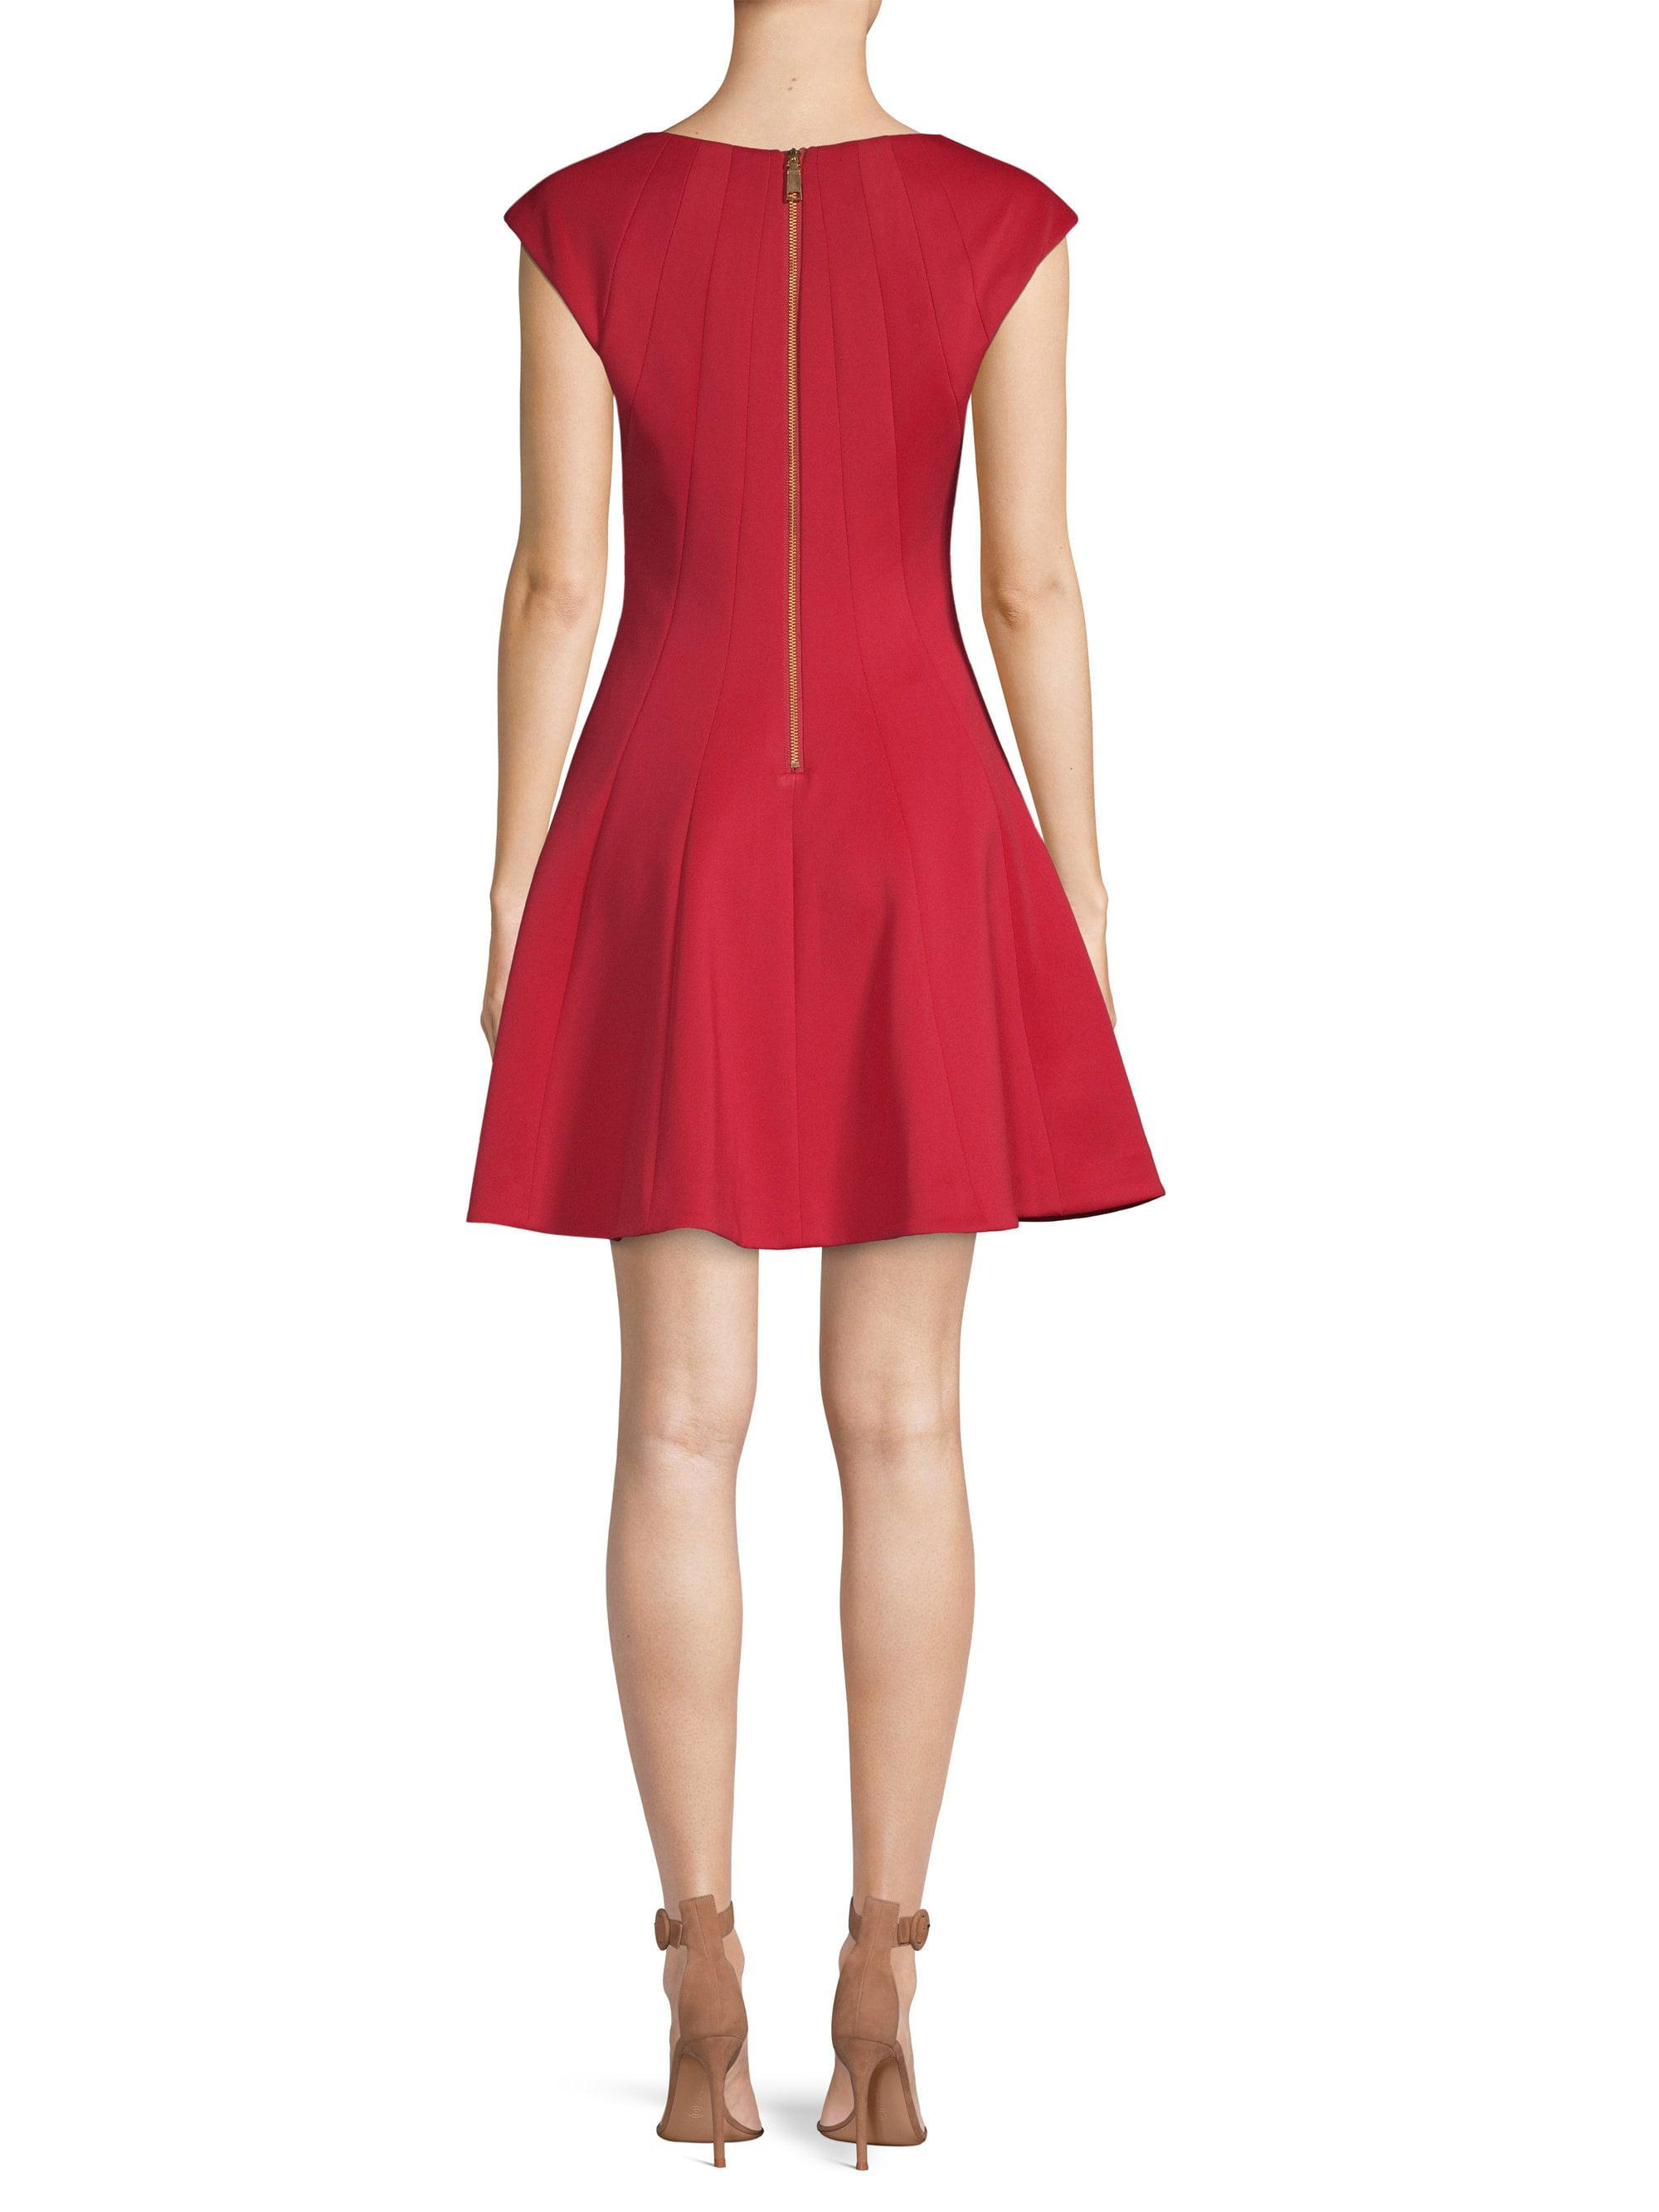 241e3d70 Laundry By Shelli Segal Scuba Crepe Fit-&-flare Dress in Red - Lyst